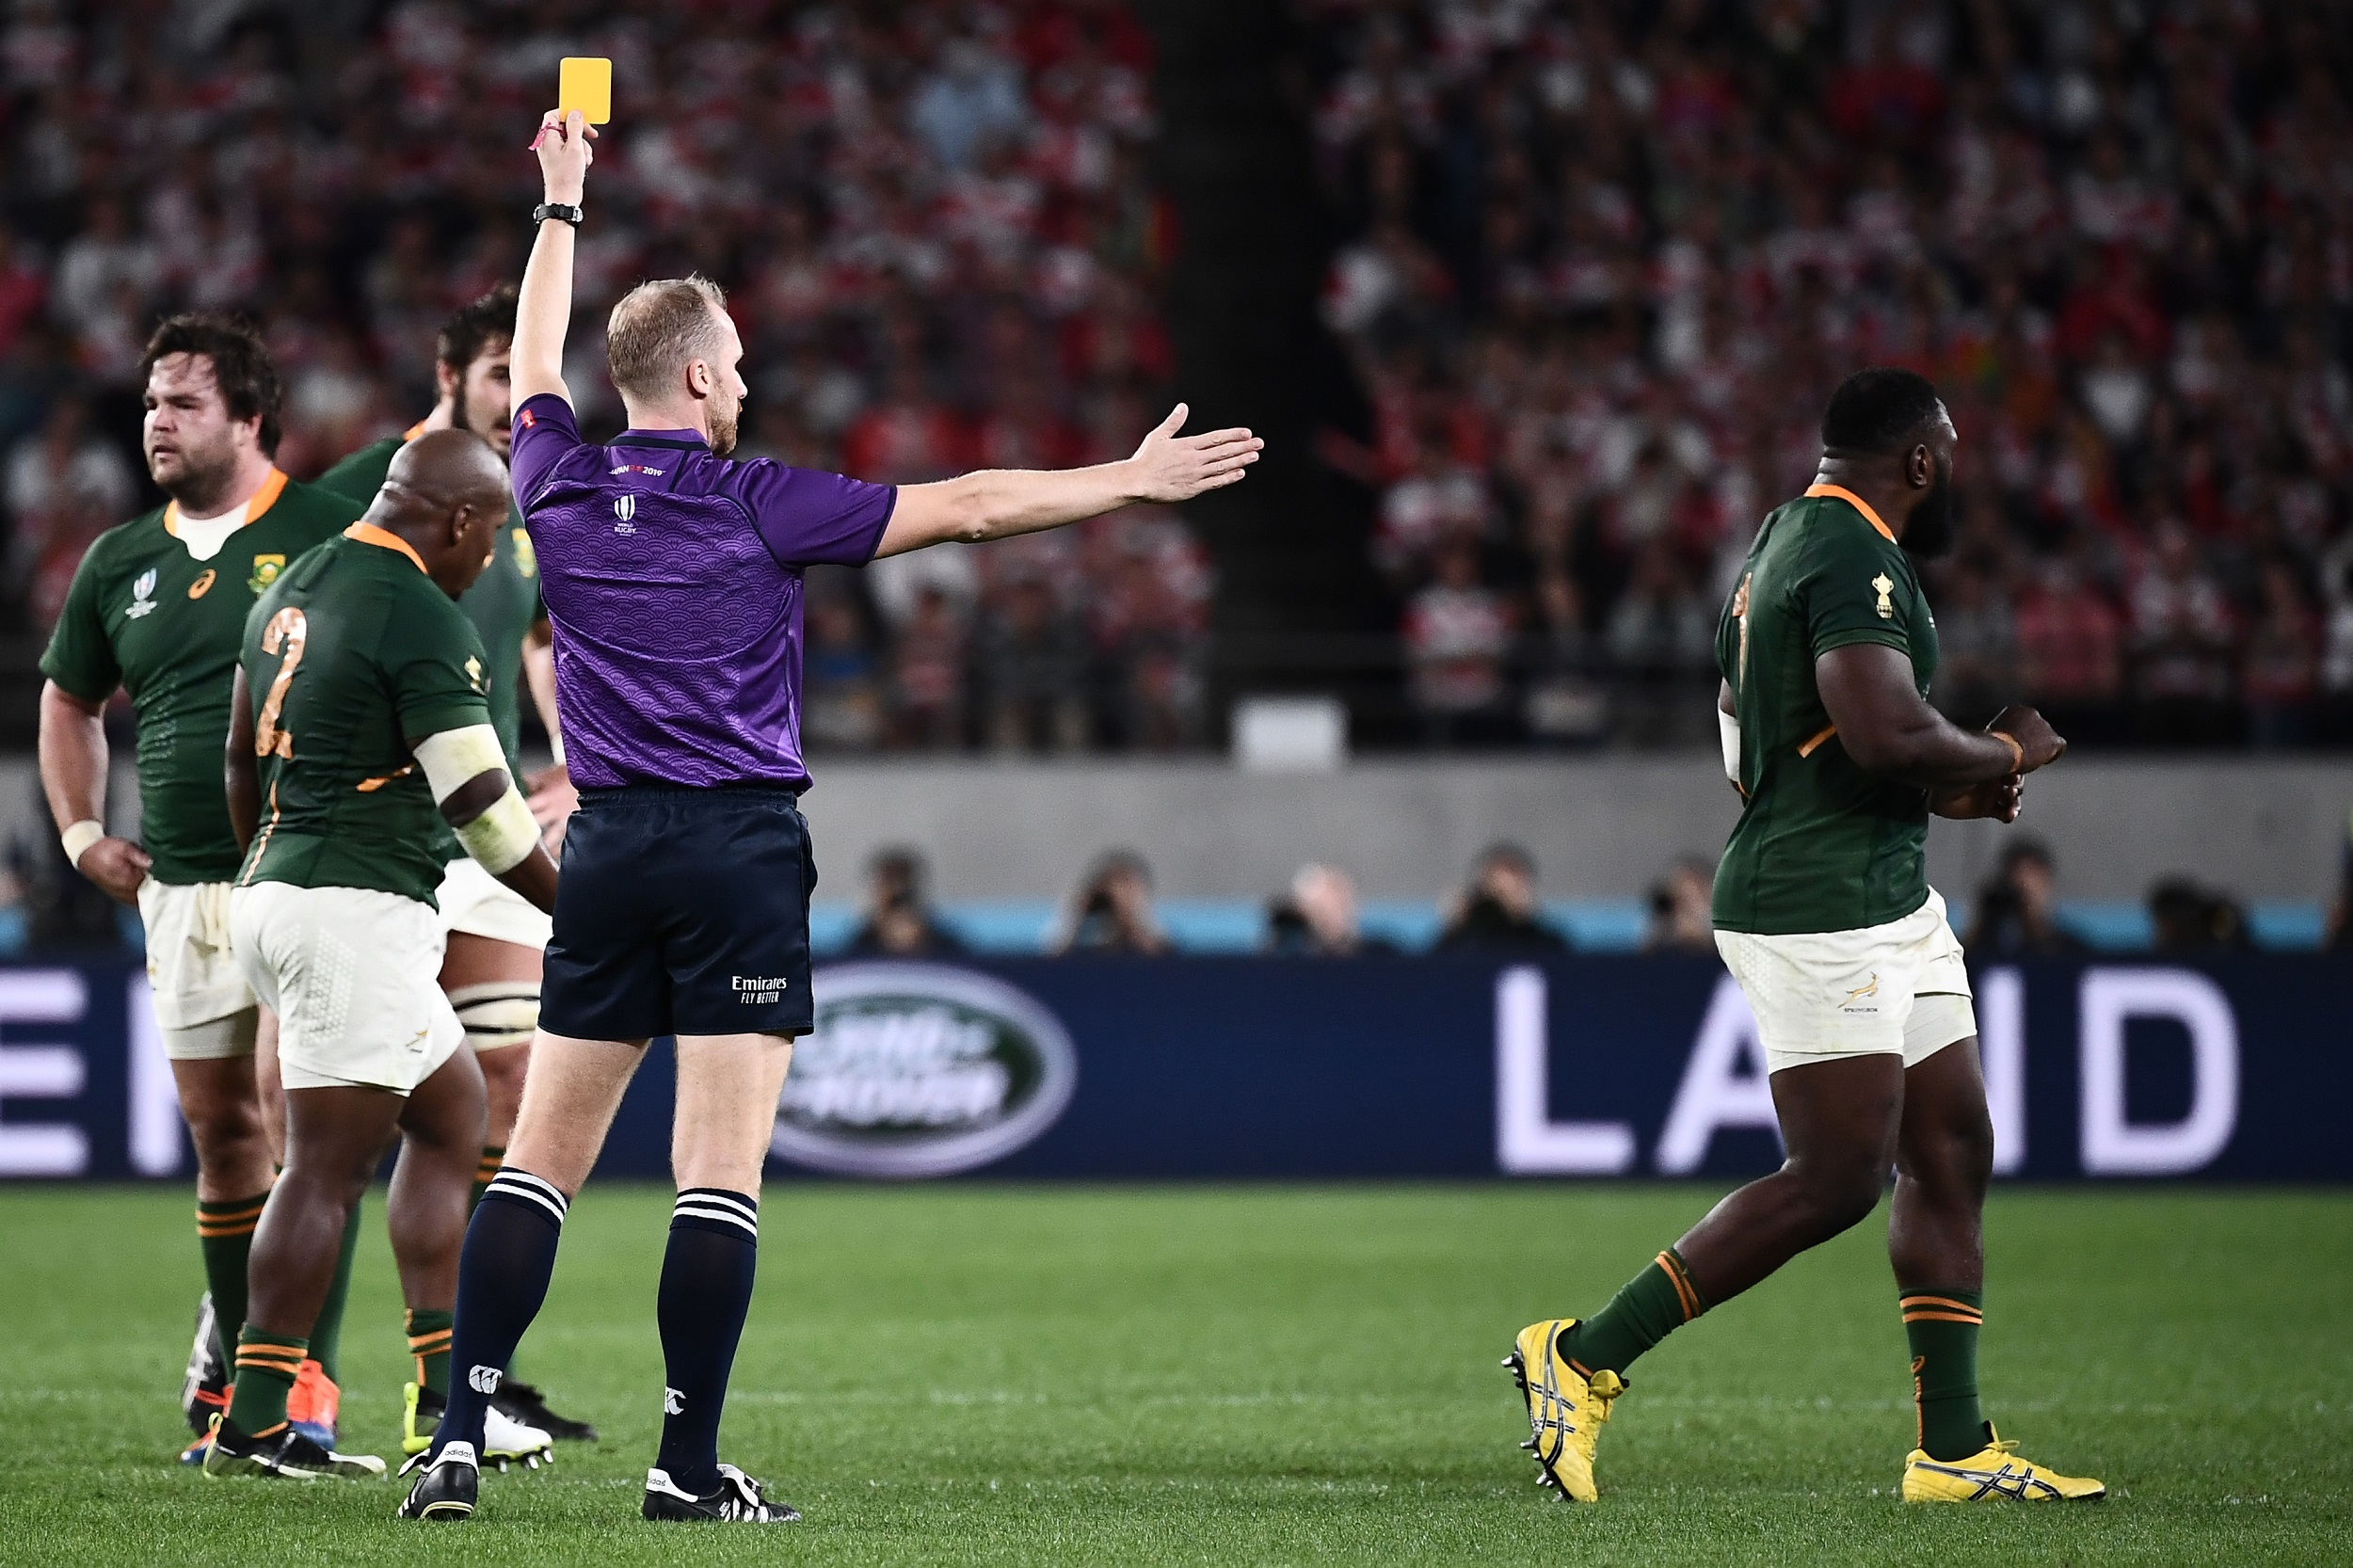 South Africa's prop Tendai Mtawarira (R) receives a yellow card from English referee Wayne Barnes (L) during the Japan 2019 Rugby World Cup quarter-final match between Japan and South Africa.